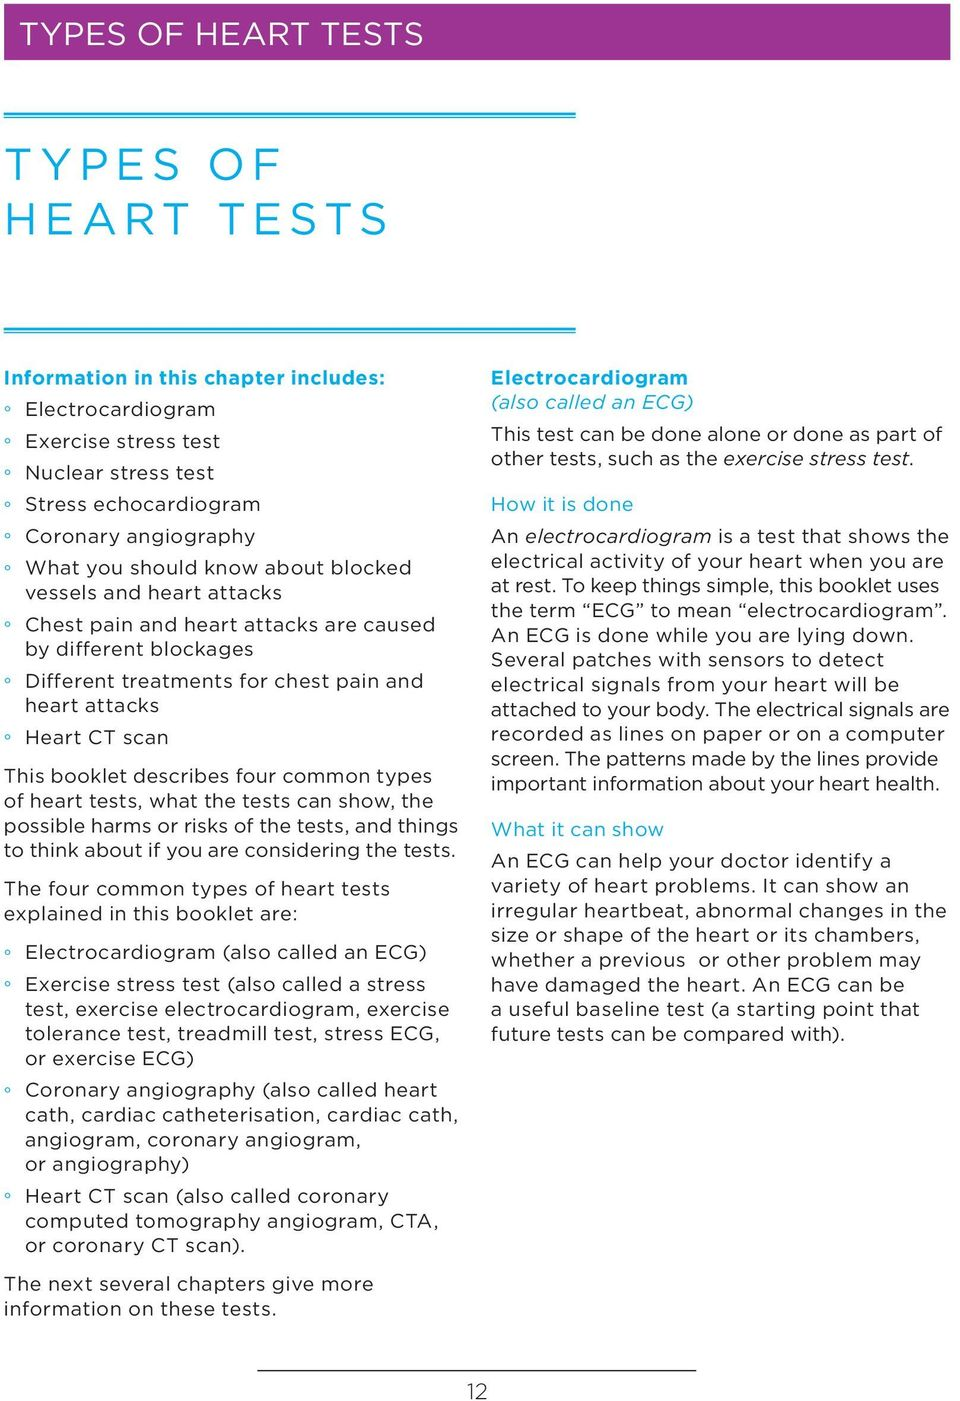 four common types of heart tests, what the tests can show, the possible harms or risks of the tests, and things to think about if you are considering the tests.